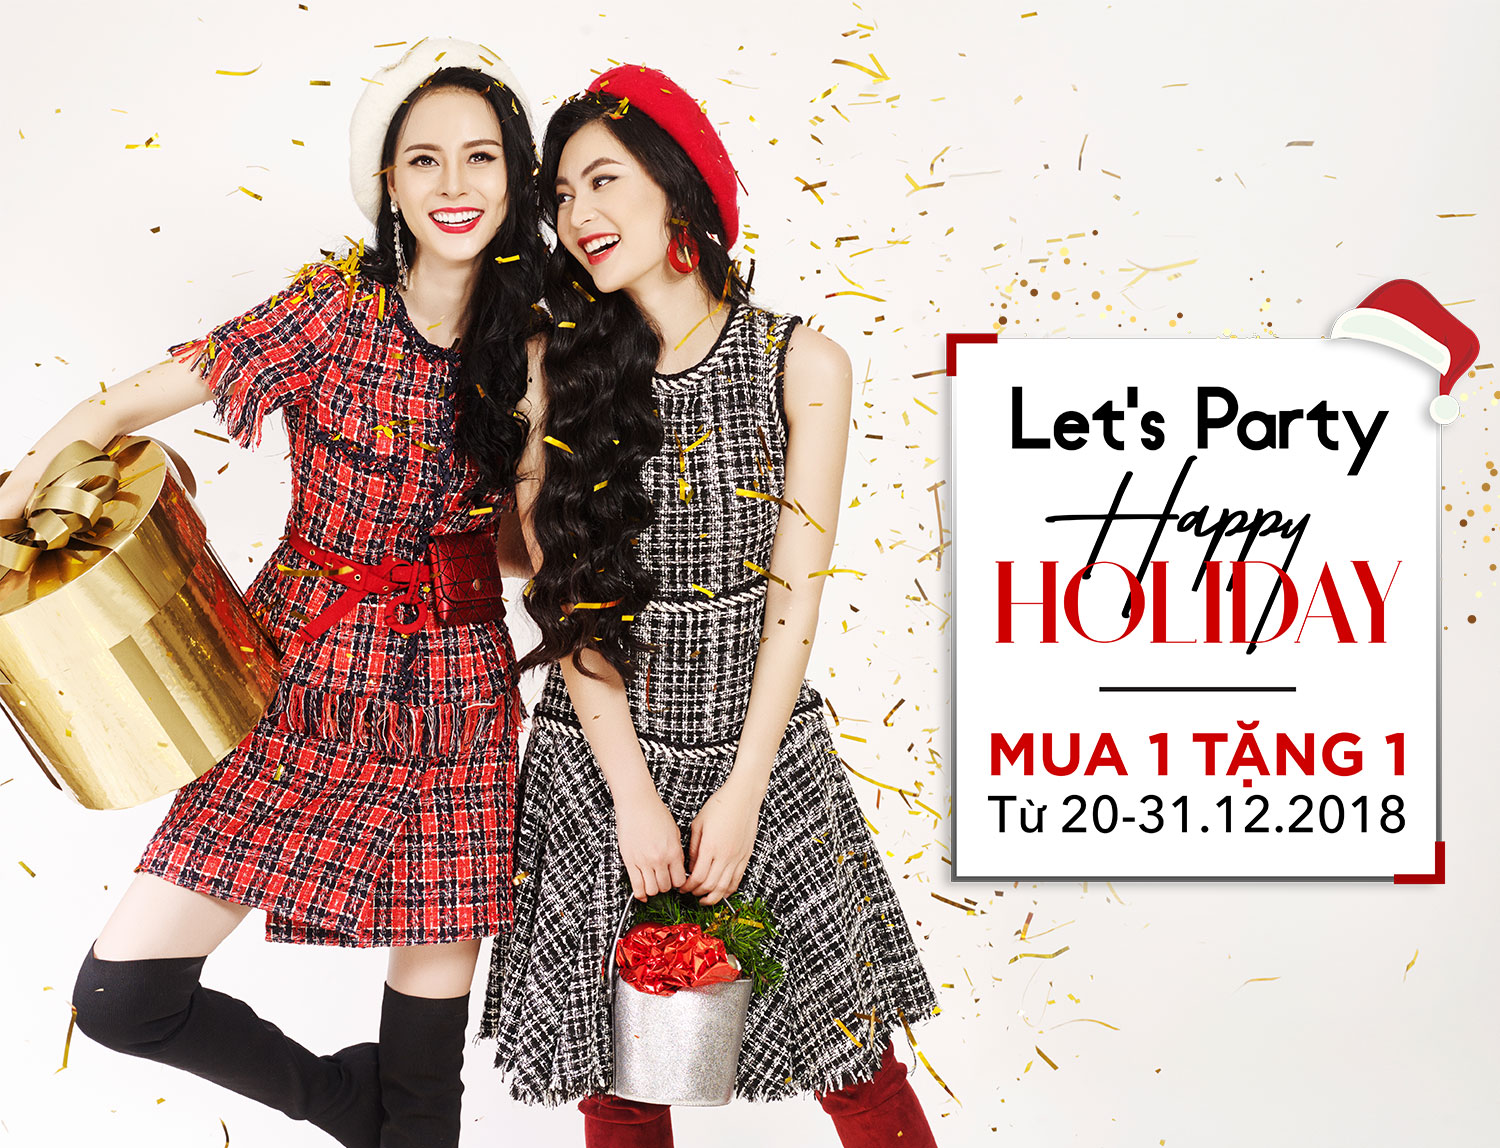 let-s-party-happy-holiday-mua-1-tang-1